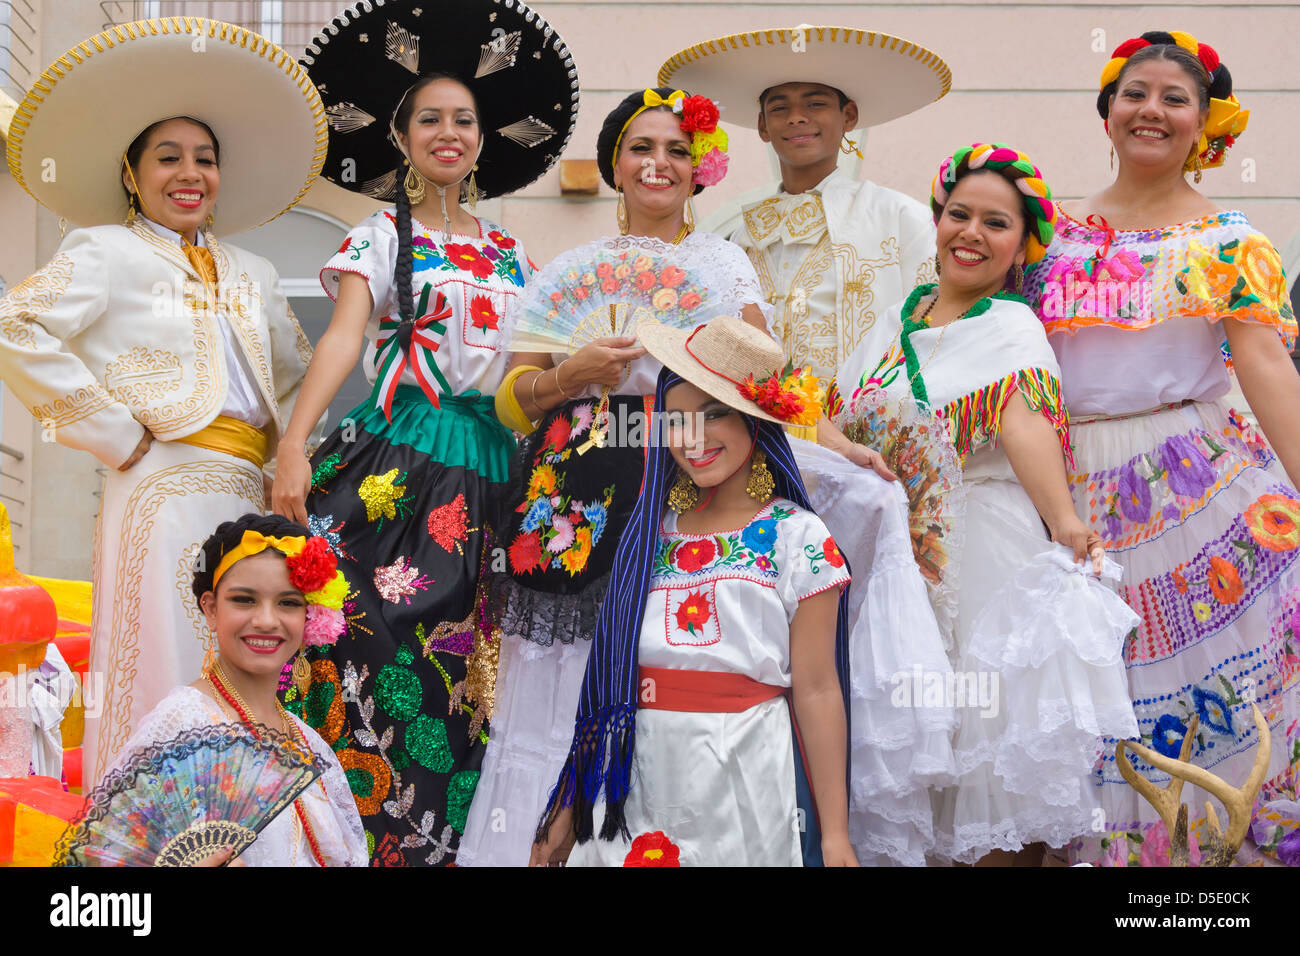 Image result for carnival in mexico